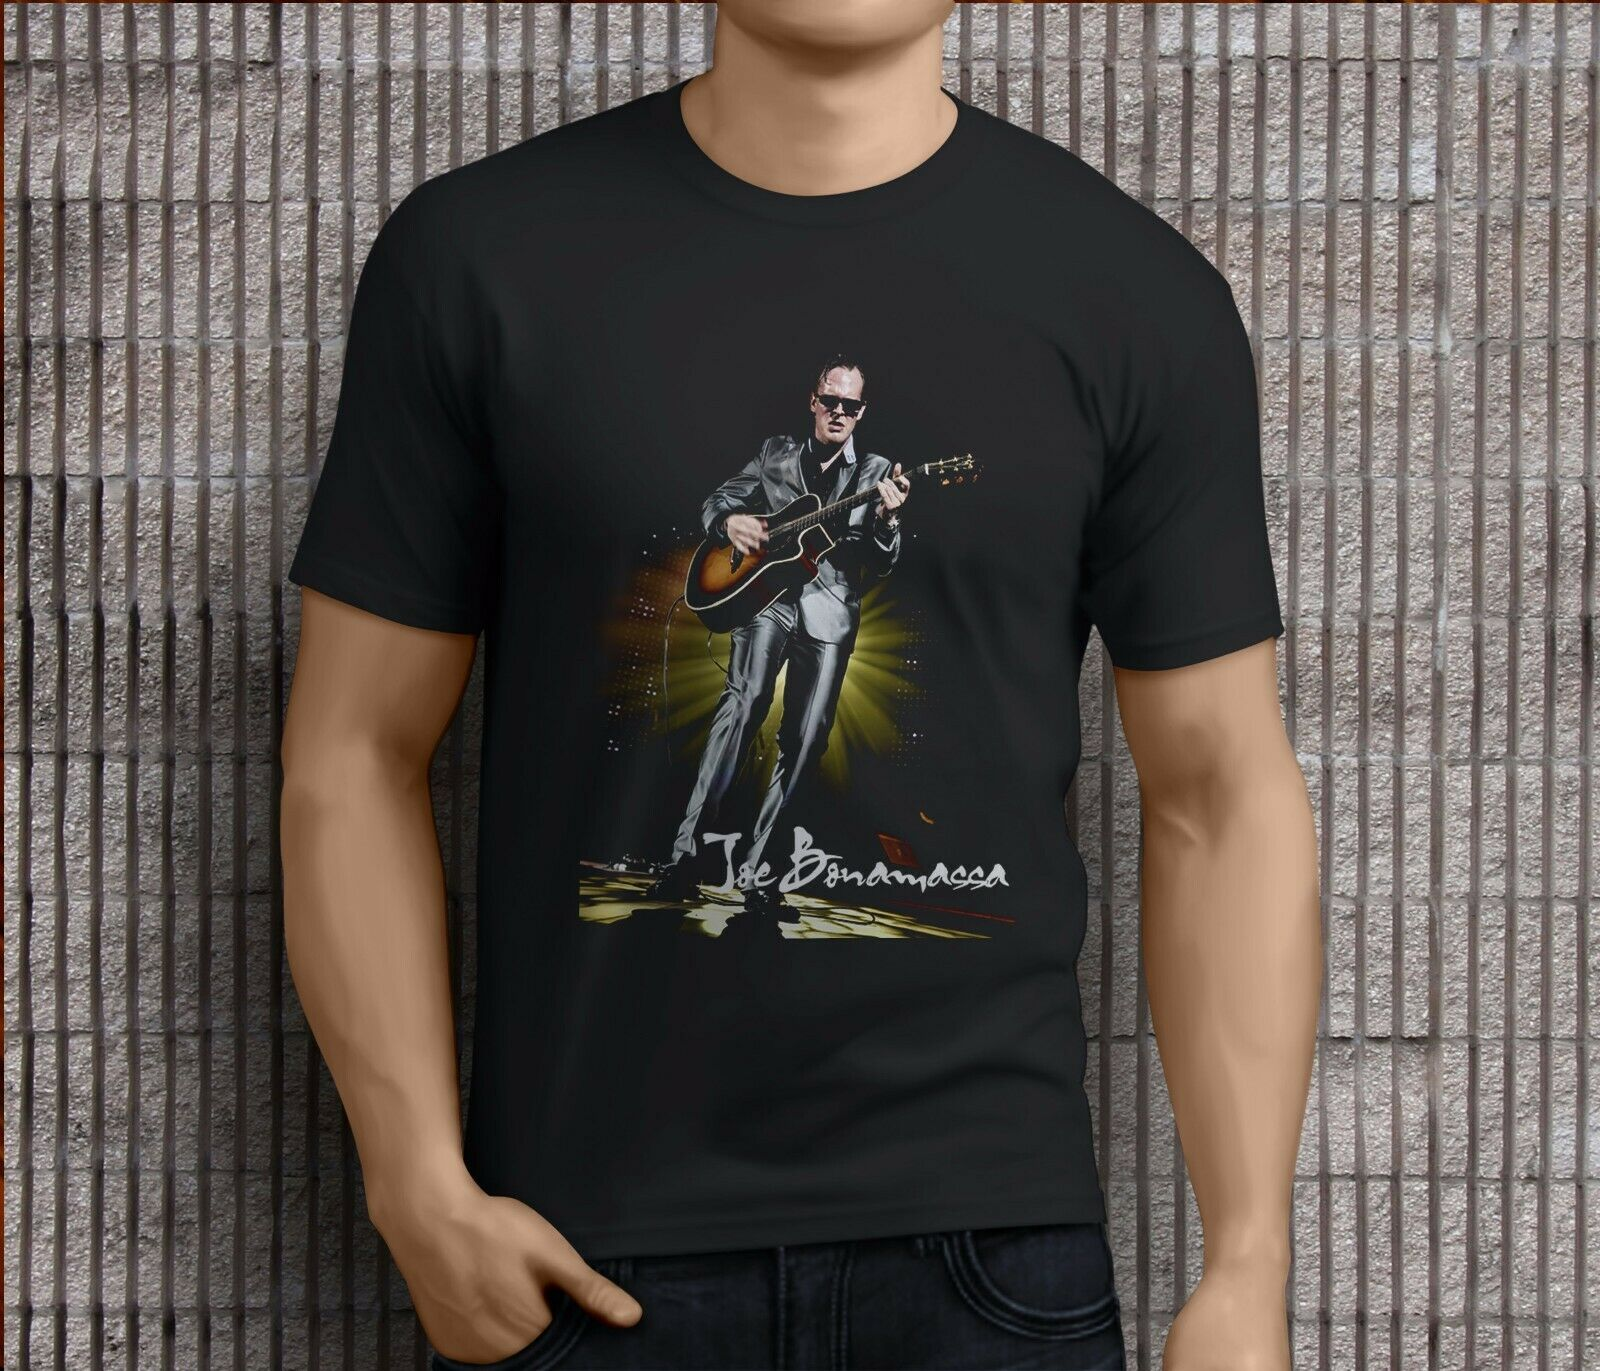 New Popular JOE BONAMASSA BLUES GUITARIST LEGEND Men's Black T-Shirts S-3XL T Shirt Men Print image